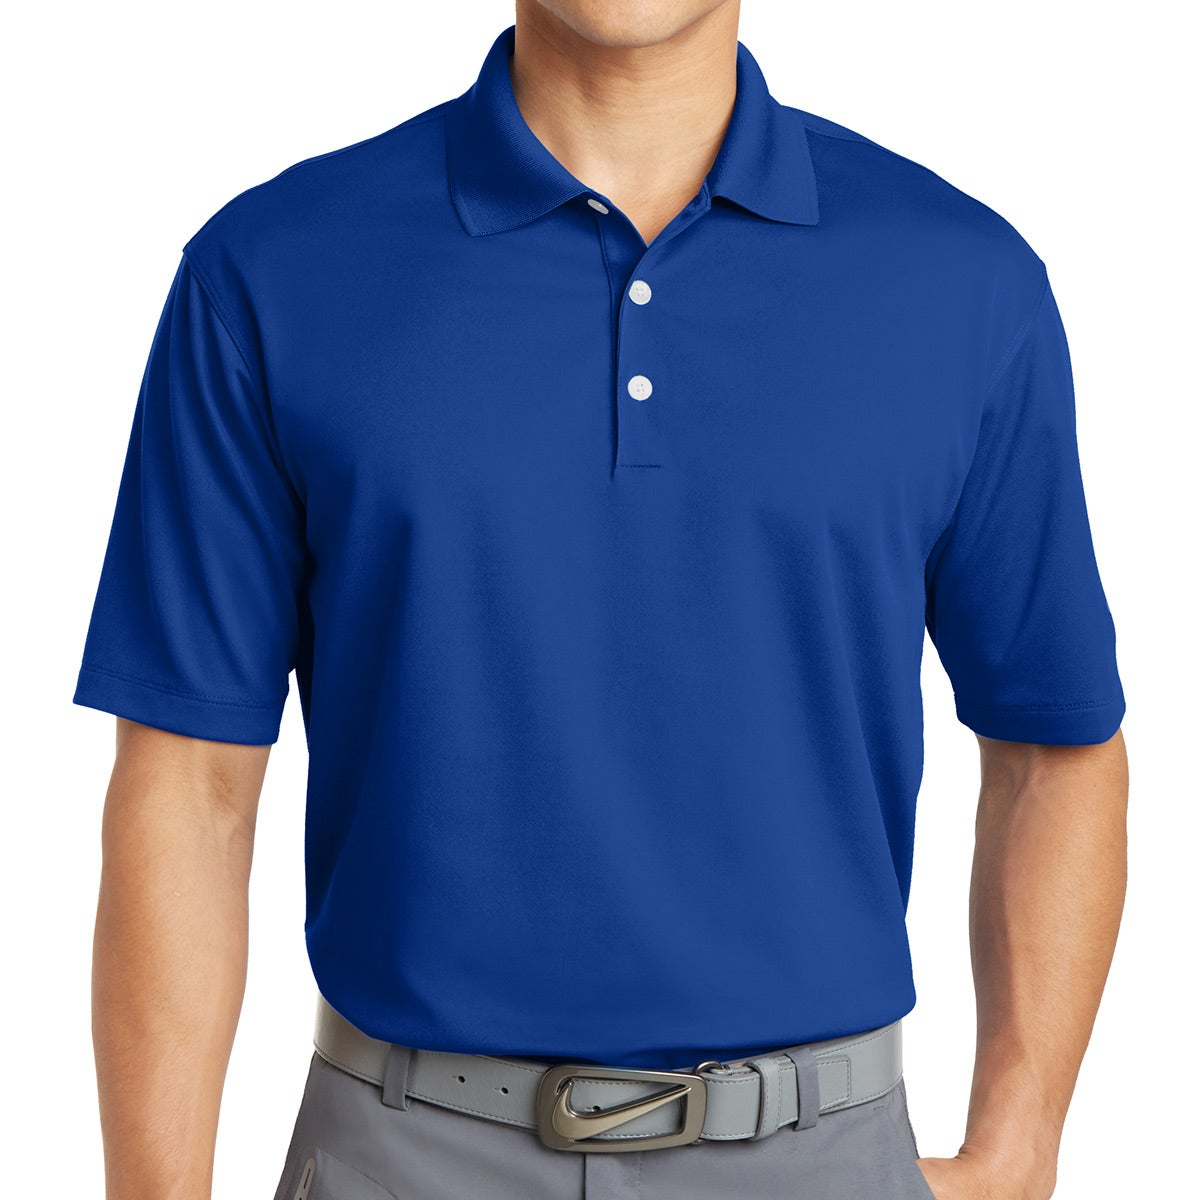 6157e6d28ed CLICK HERE to Order Colors Nike Golf Dri-FIT Micro Pique Polo Shirts  Printed with Your Logo for $43.04 Ea.